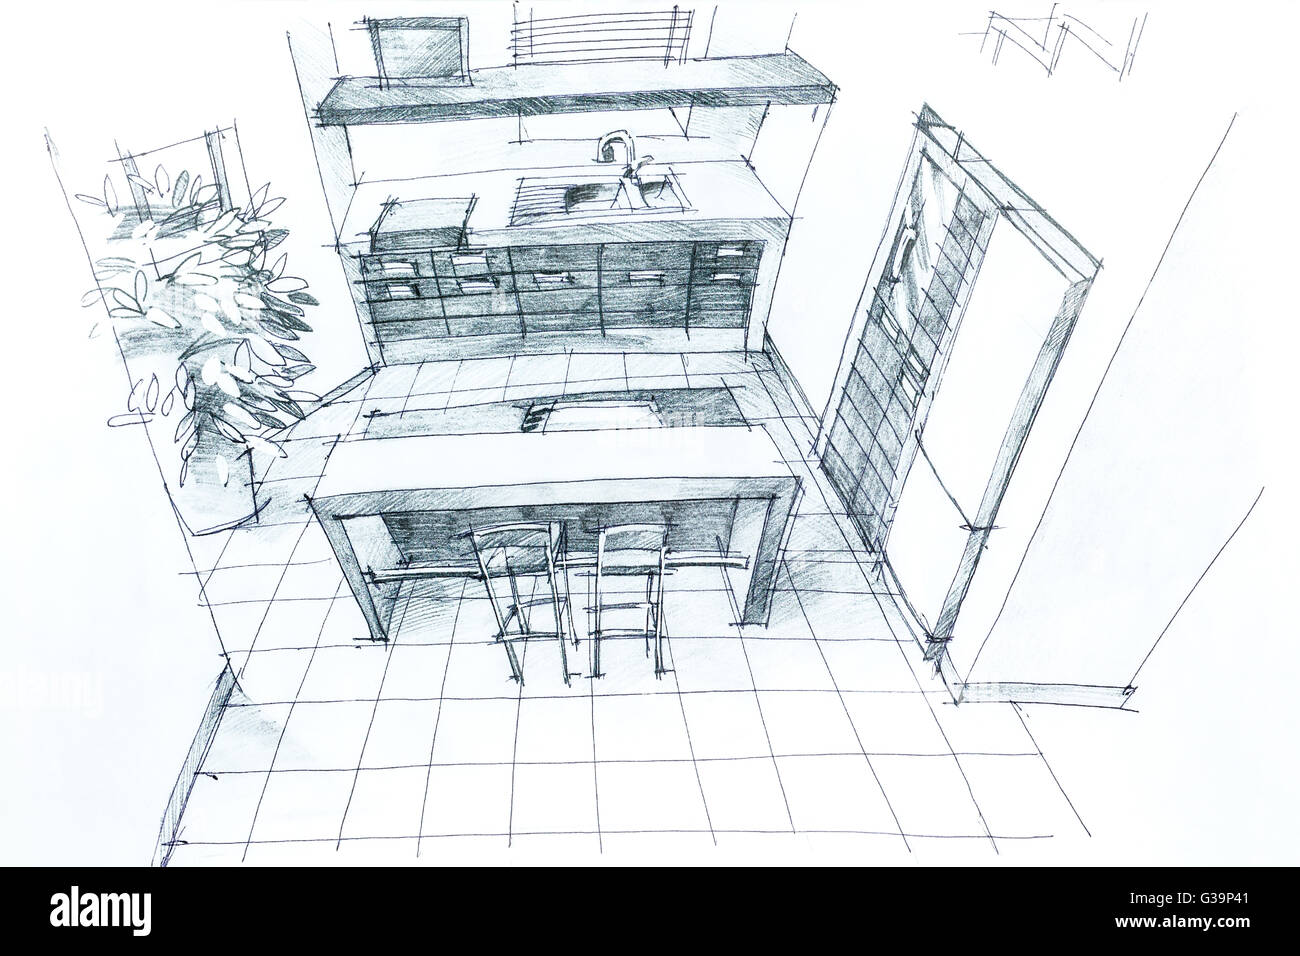 Graphical sketch by pencil of an interior kitchen. Architectural ...